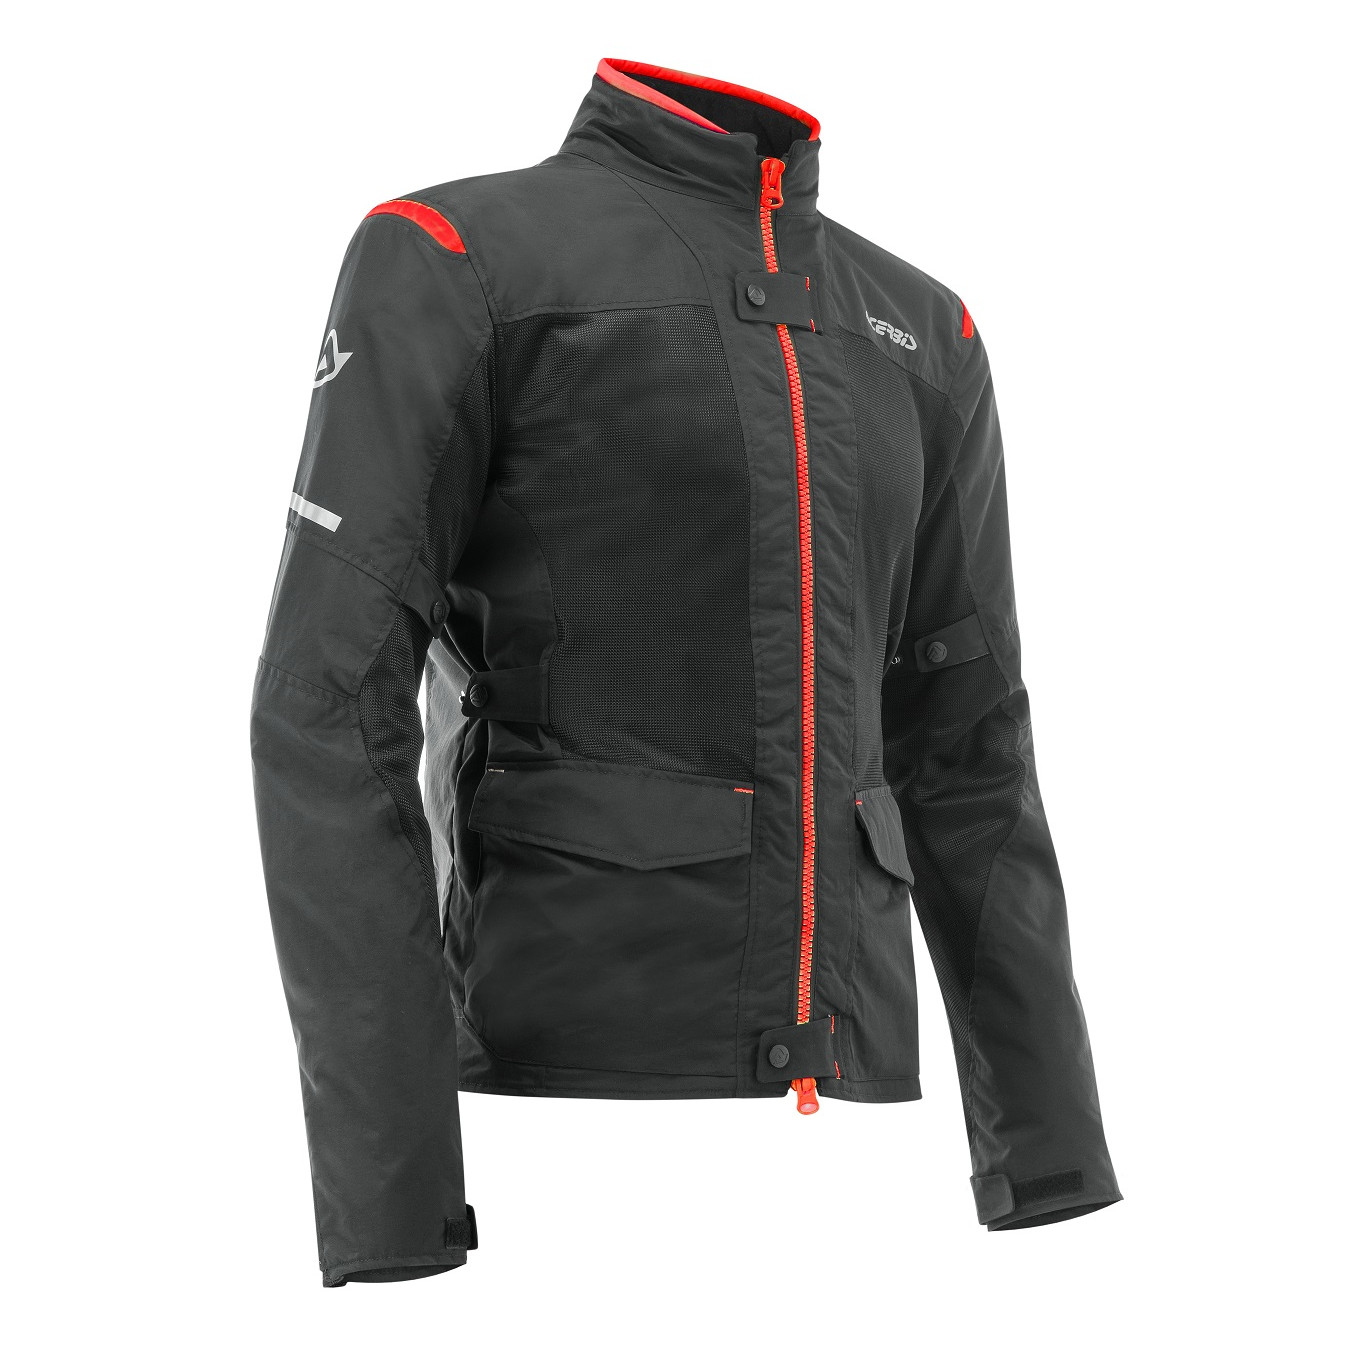 ACERBIS - RAMSEY MY VENTED 2.0 LONG JACKET - BLACK RED